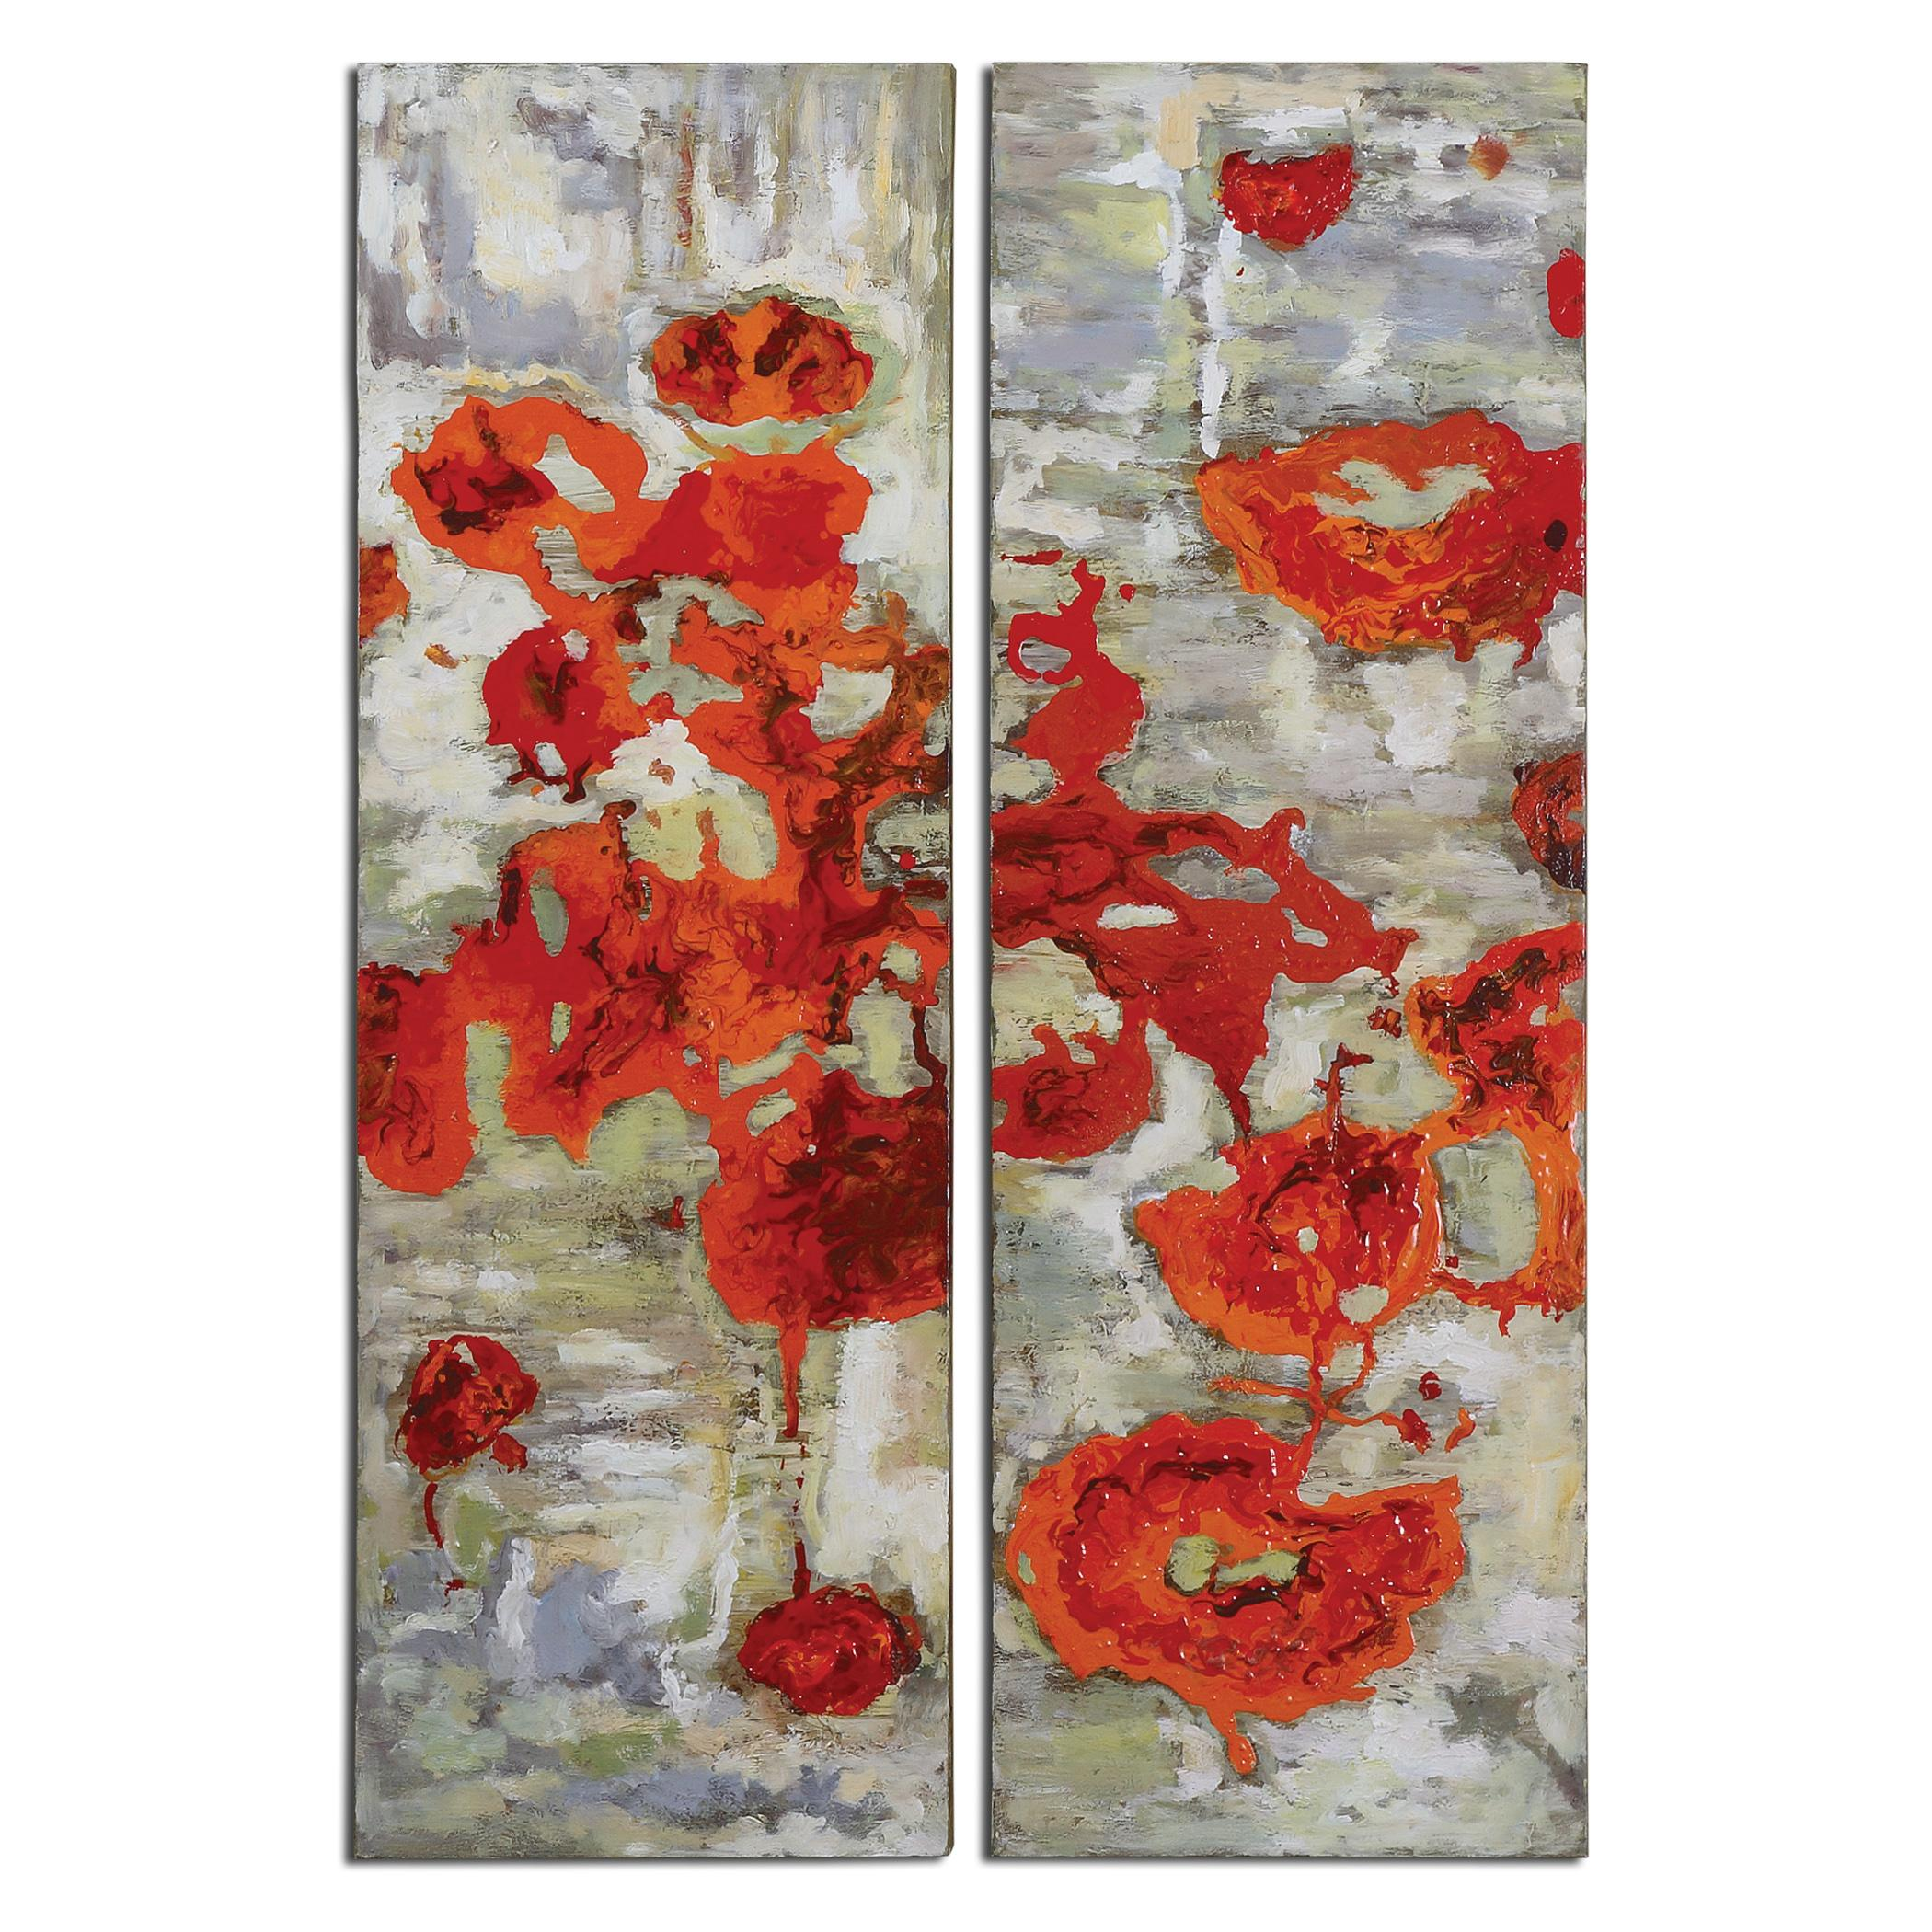 Art Scarlet Poppies Floral Art, Set of  2  by Uttermost at Upper Room Home Furnishings